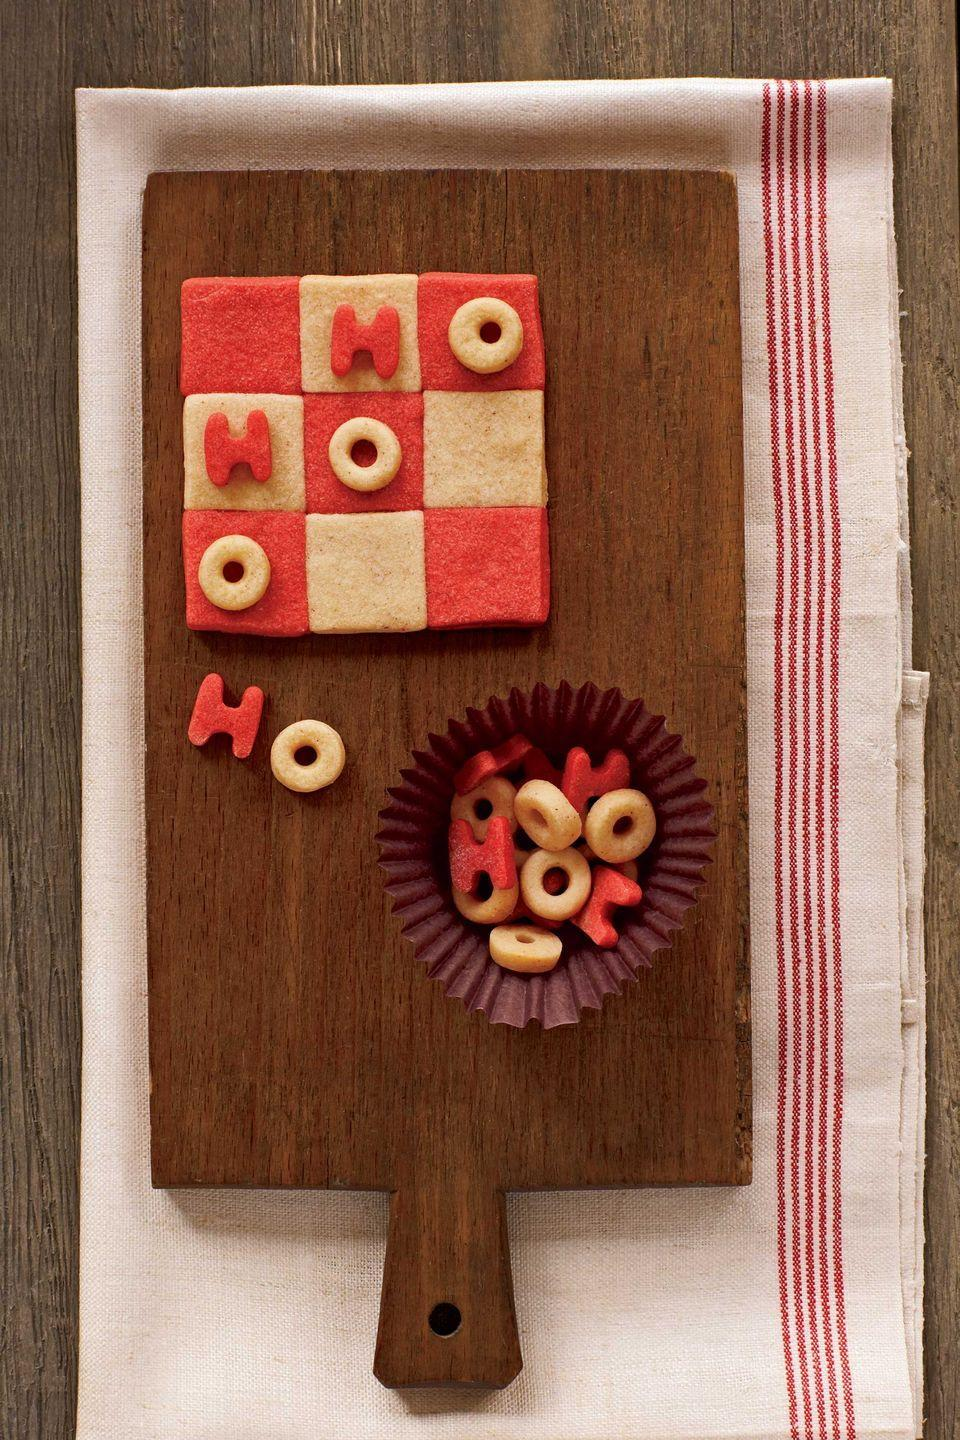 "<p>Begin by pressing together nine 1 1/4-inch squares of dough to make the tic-tac-toe game board, and cut out plenty of <em>H</em>s and <em>O</em>s. The tiny letters will bake very quickly, so keep watch to prevent them from overbrowning.</p><p><a href=""https://www.countryliving.com/food-drinks/recipes/a2022/sugar-cookie-dough-clv1207/"" rel=""nofollow noopener"" target=""_blank"" data-ylk=""slk:Get the recipe."" class=""link rapid-noclick-resp""><strong>Get the recipe.</strong></a></p>"